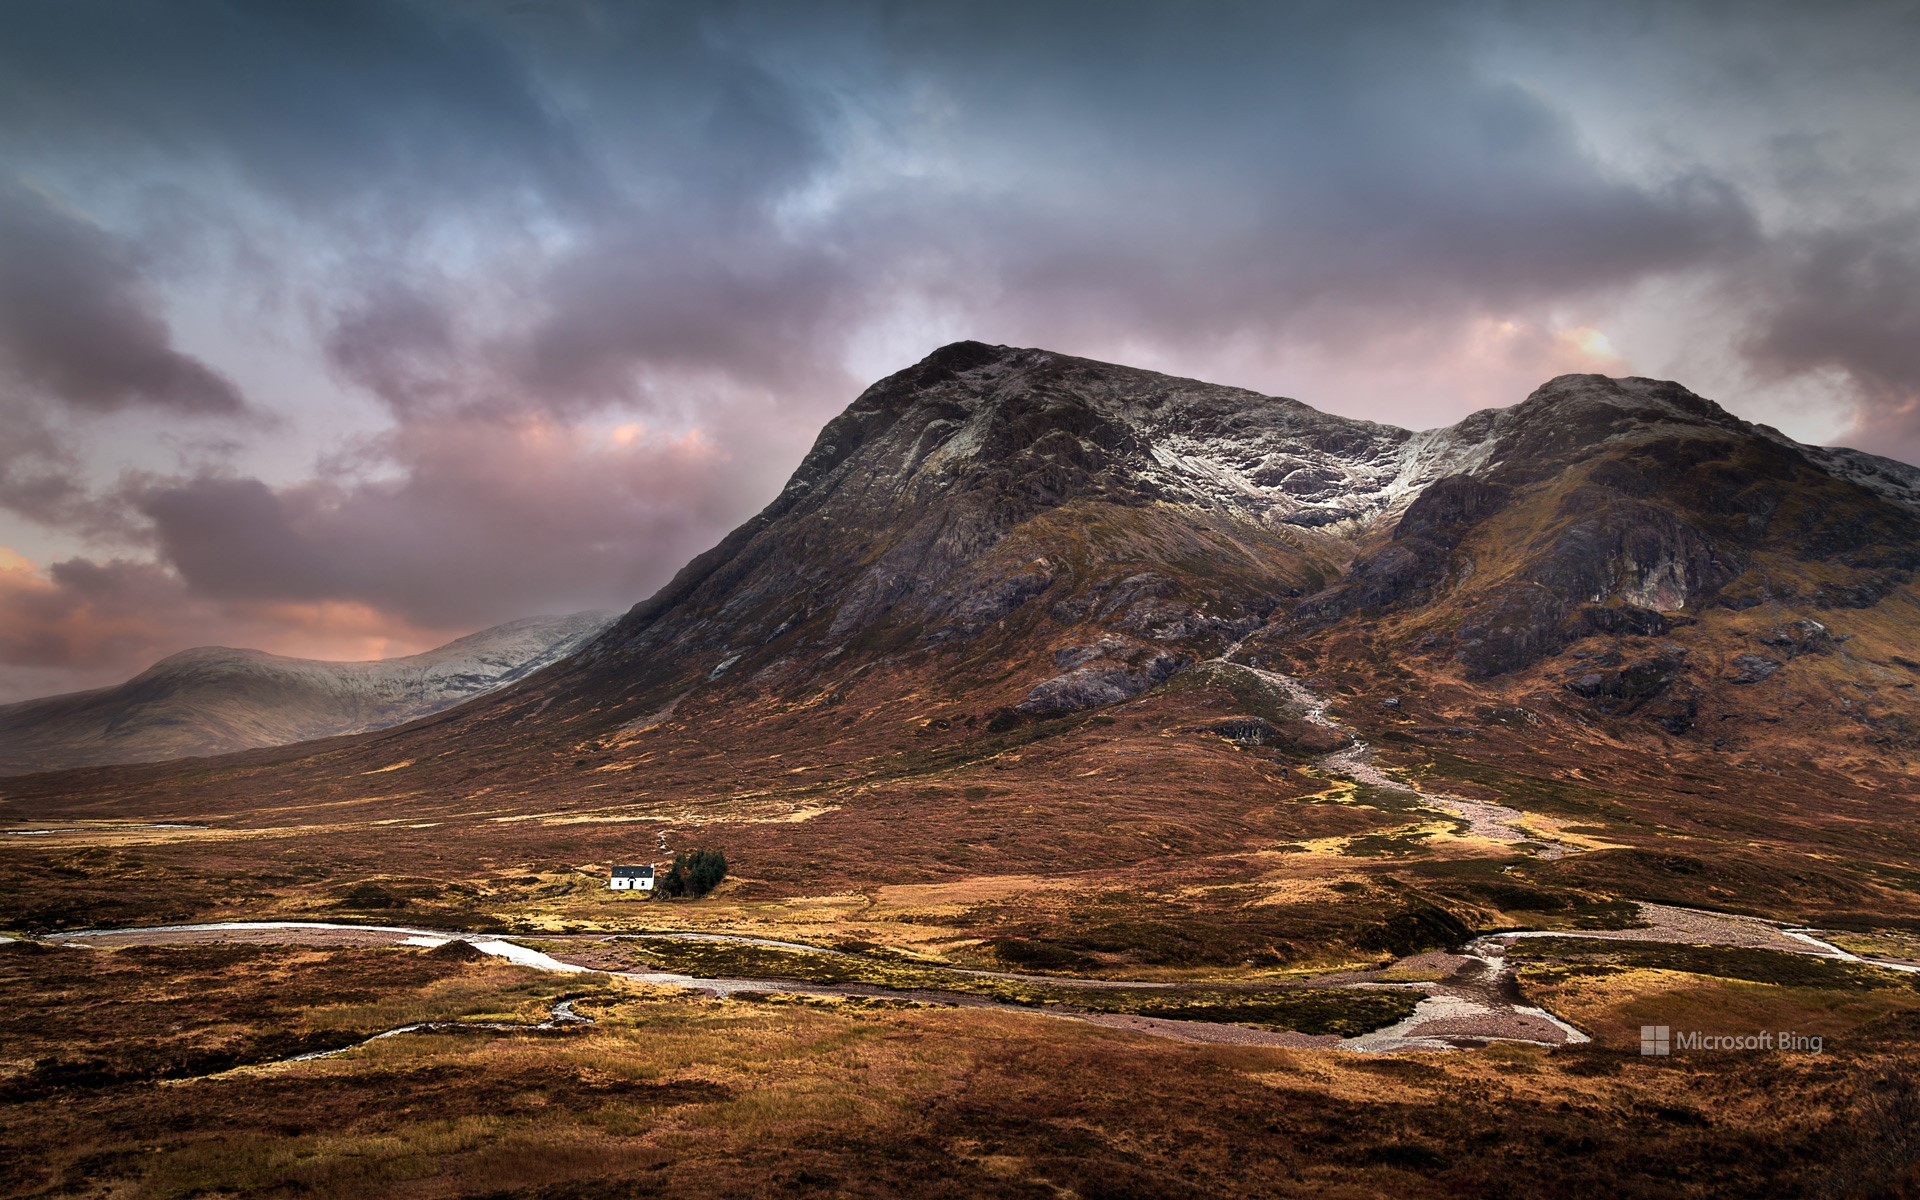 The Lagangarbh hut nestles in the valley beneath Buachaille Etive Mòr, Glencoe